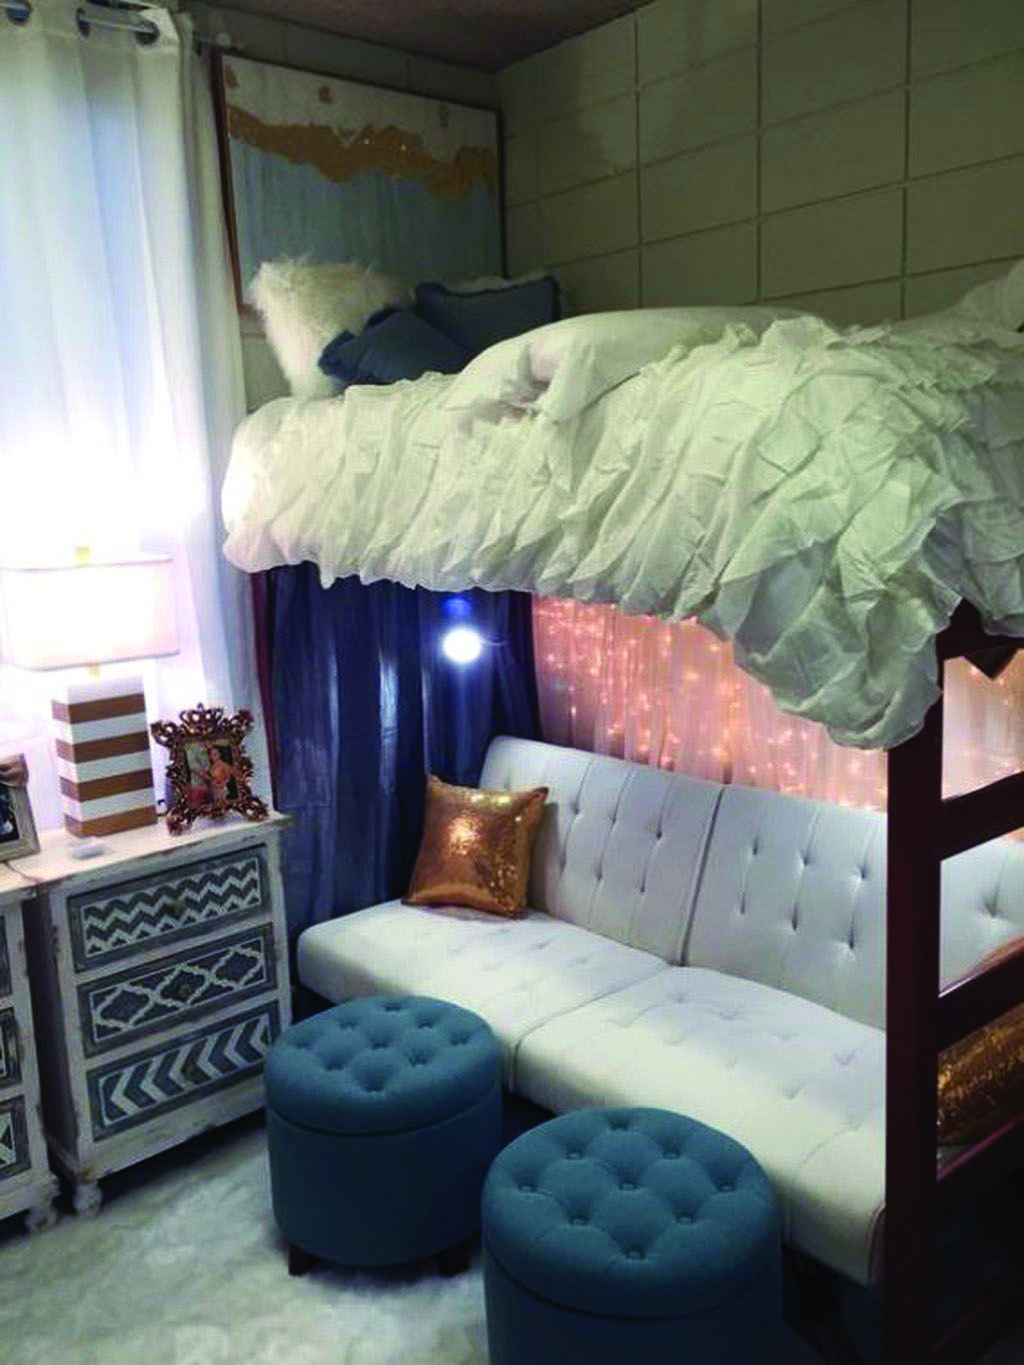 Adolescent Bedroom Ideas That Are Actually Enjoyable And Cool With Images Dorm Room Inspiration Dorm Room Diy Dorm Room Designs